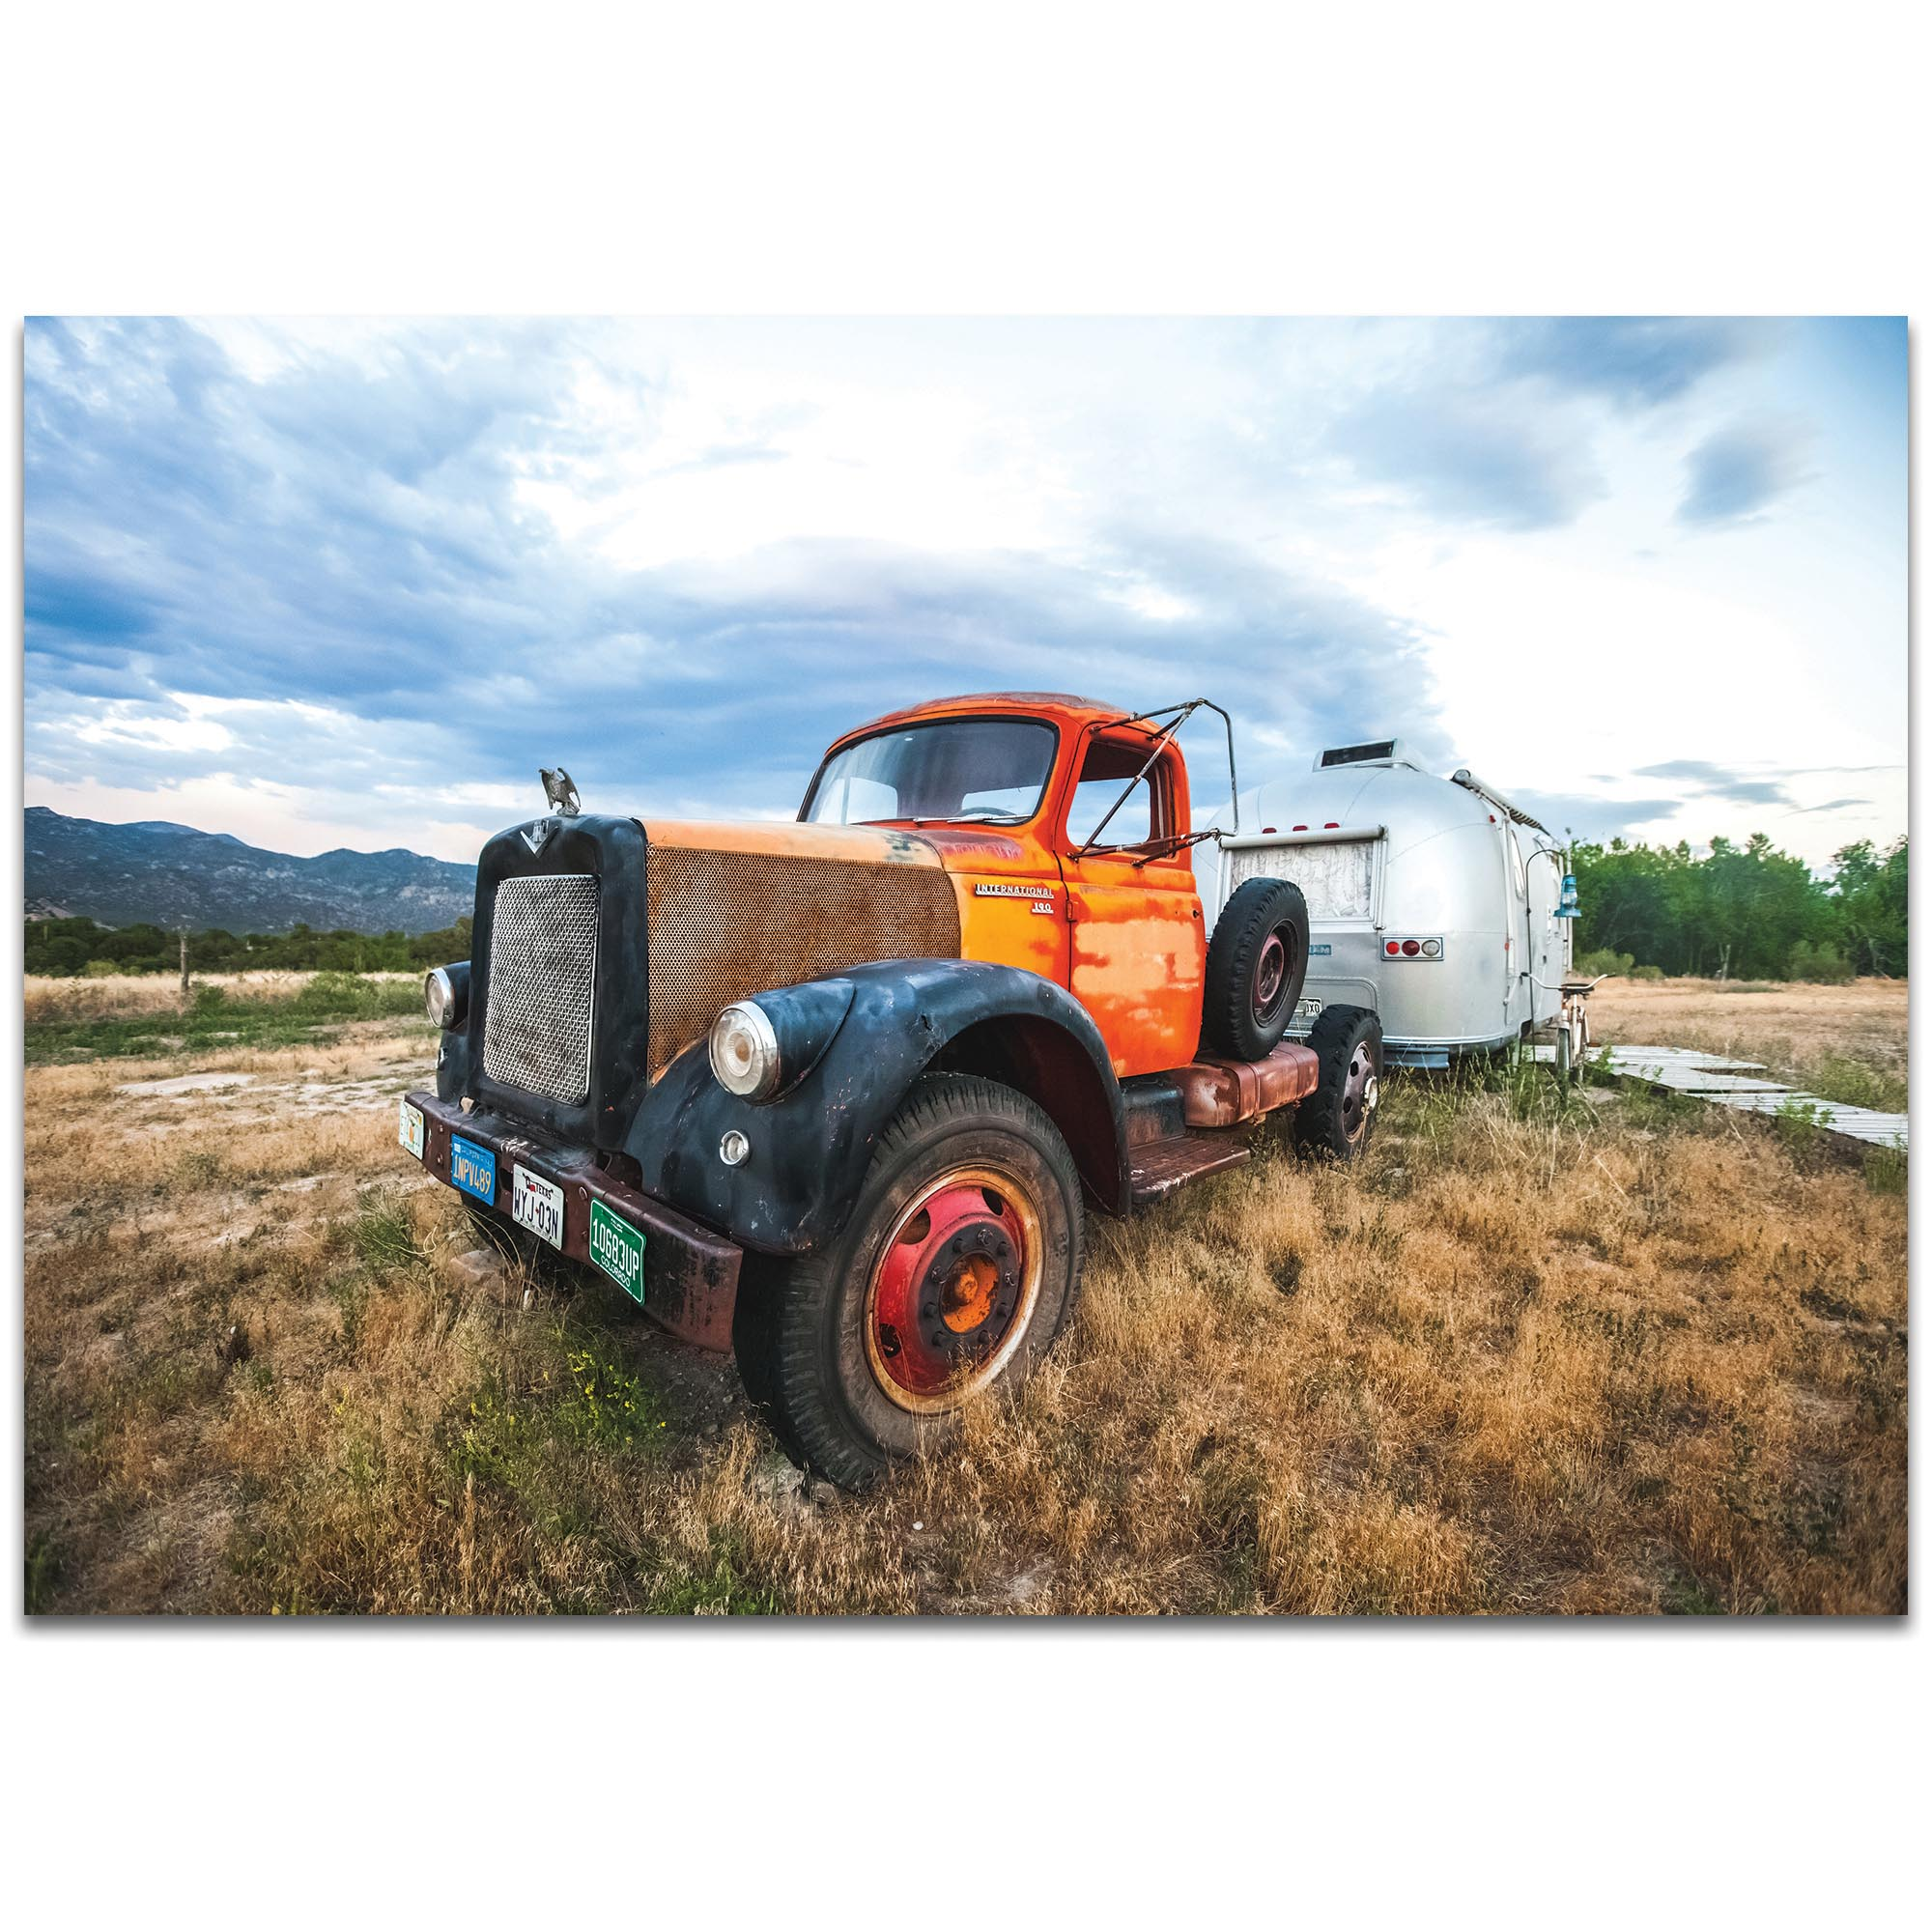 Americana Wall Art 'The Workhorse' - Classic Truck Decor on Metal or Plexiglass